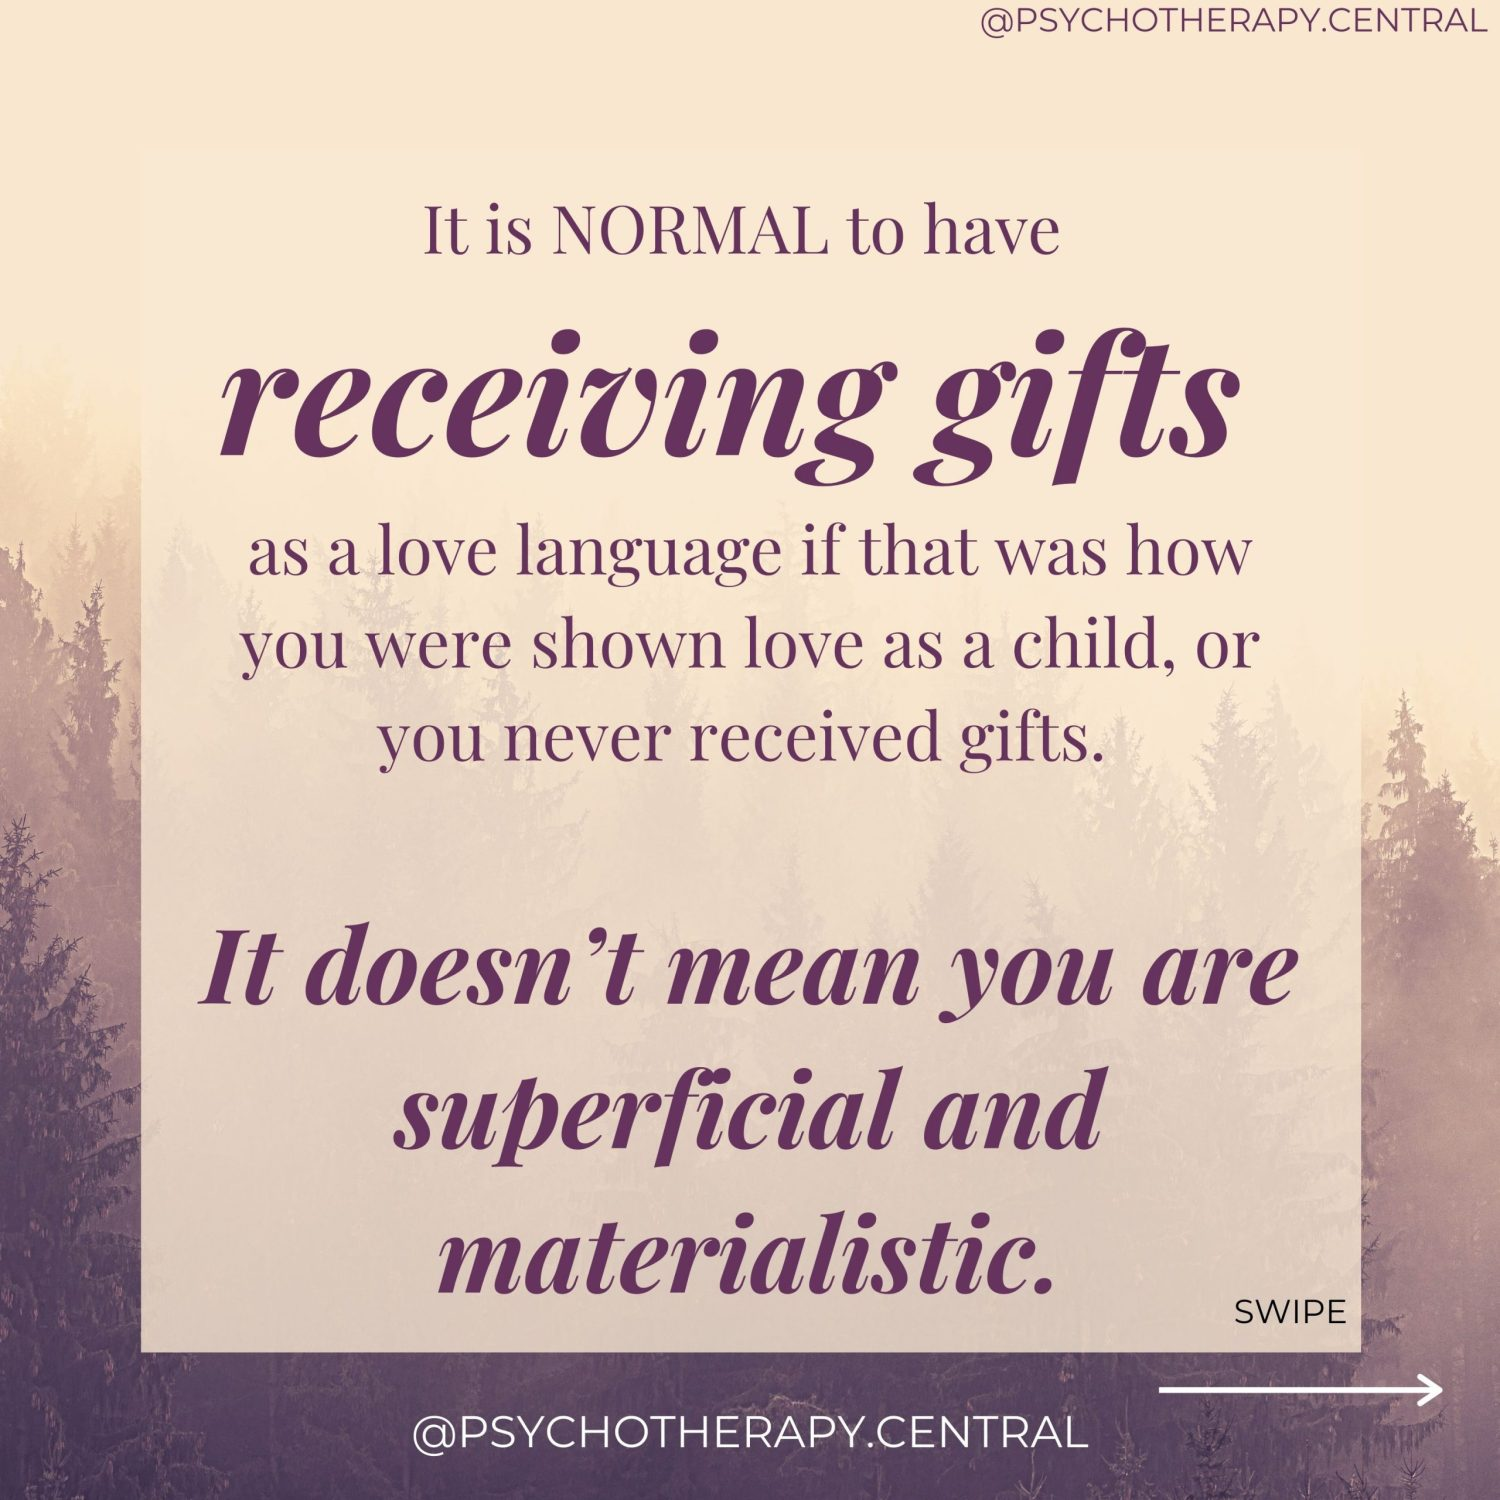 Wanting to Receive Gifts as a Love Language is not Superficial and Materialistic